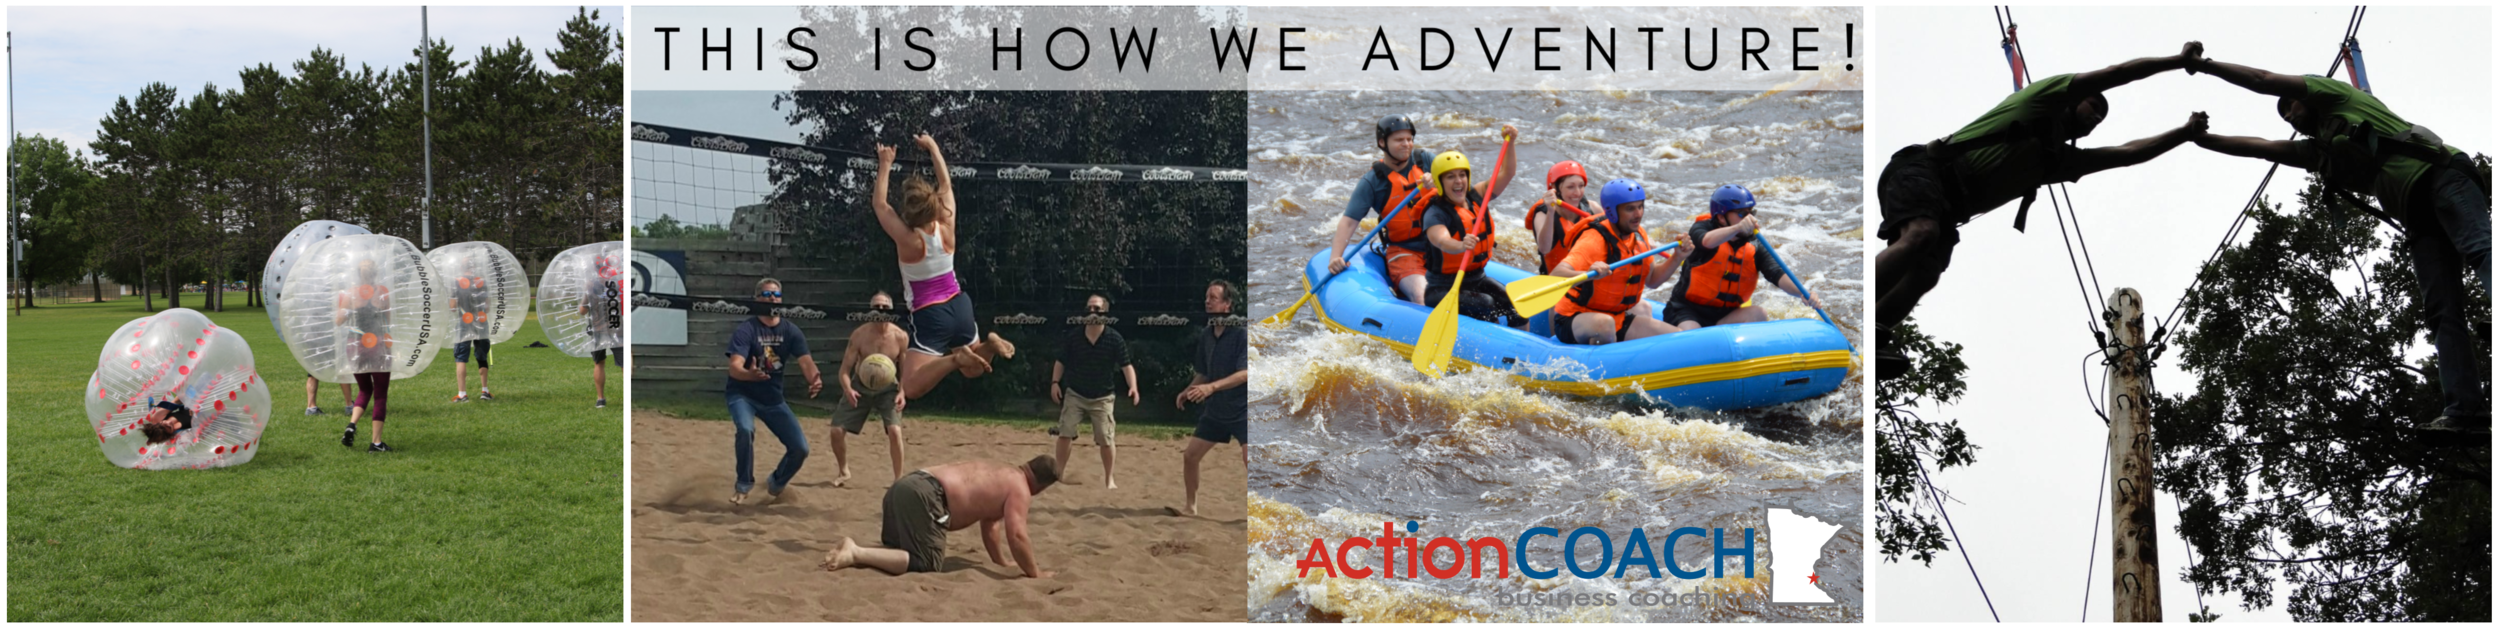 2019 ADVENTURE DAY - Website.png